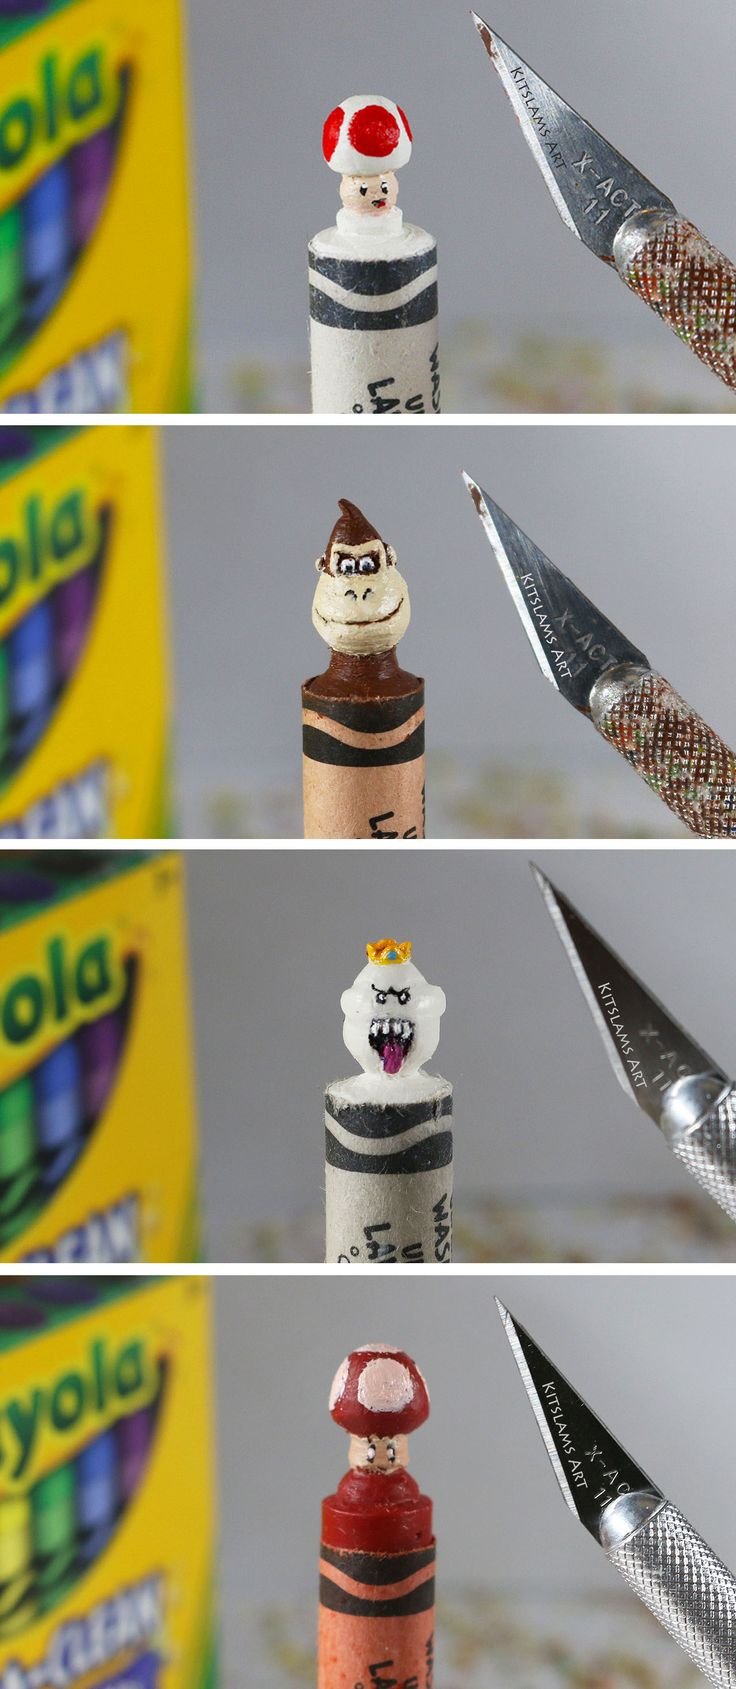 Nintendo Crayon Carving collection on the tip of Crayola Crayons by @kitslam | Videos: https://www.youtube.com/watch?v=iKSf06obKIY&list=PL3gRhsFjneo13AhSmq1mf1x5cIv52swRI&index=1